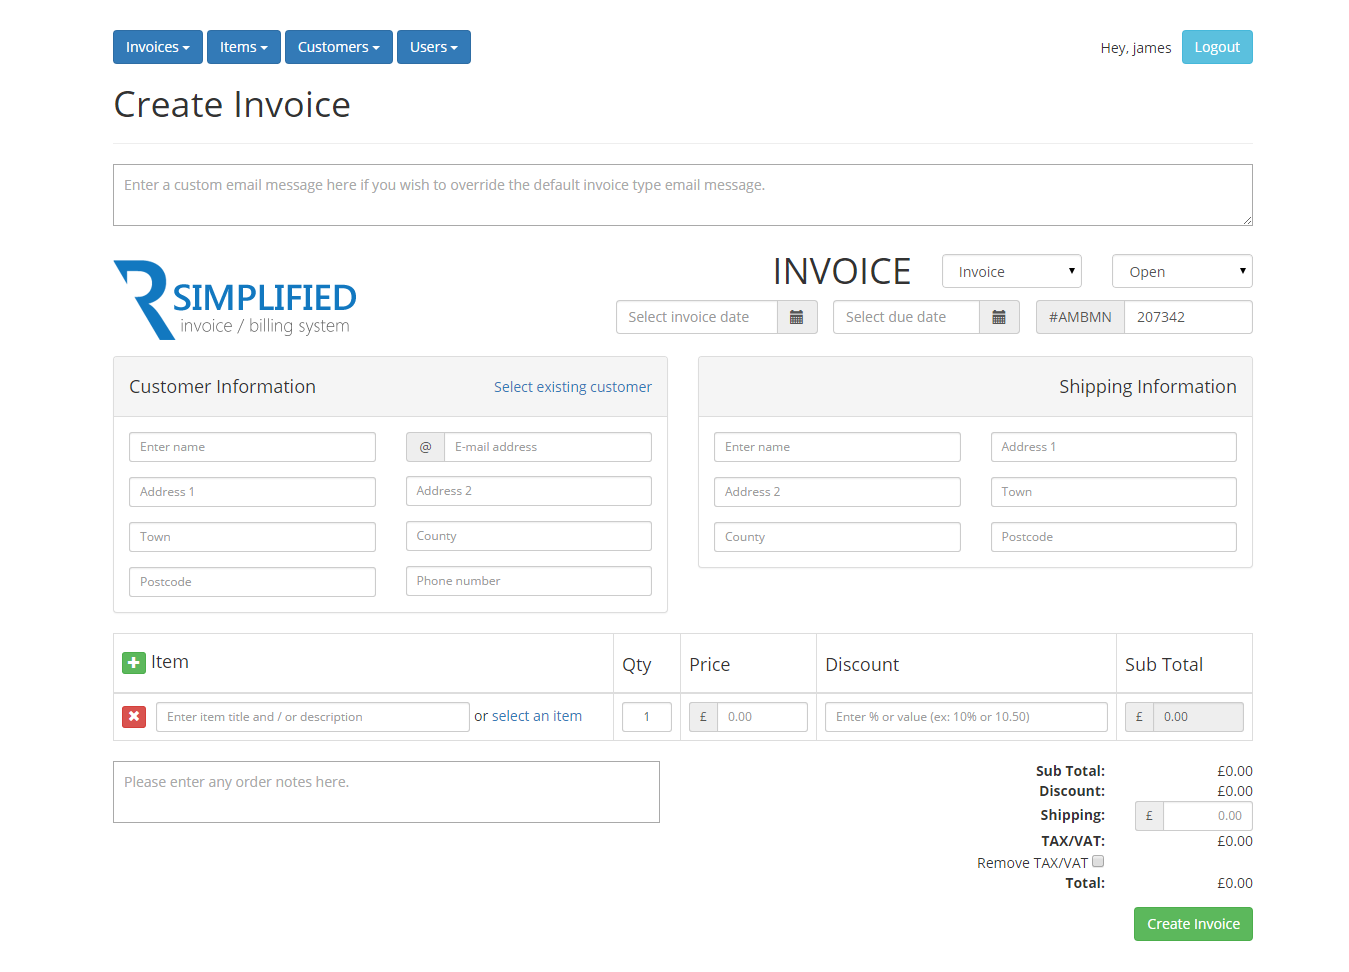 Soulfulpowerus  Surprising Simplified Php Invoice  Billing System By Rebootdigitaluk  With Remarkable  Createinvoicepng  With Lovely Invoice Not Paid What Can I Do Also Advantages Of Invoice In Addition What Does Invoice And Example Vat Invoice As Well As Gst Tax Invoice Requirements Additionally Performa Invoice Template From Codecanyonnet With Soulfulpowerus  Remarkable Simplified Php Invoice  Billing System By Rebootdigitaluk  With Lovely  Createinvoicepng  And Surprising Invoice Not Paid What Can I Do Also Advantages Of Invoice In Addition What Does Invoice From Codecanyonnet